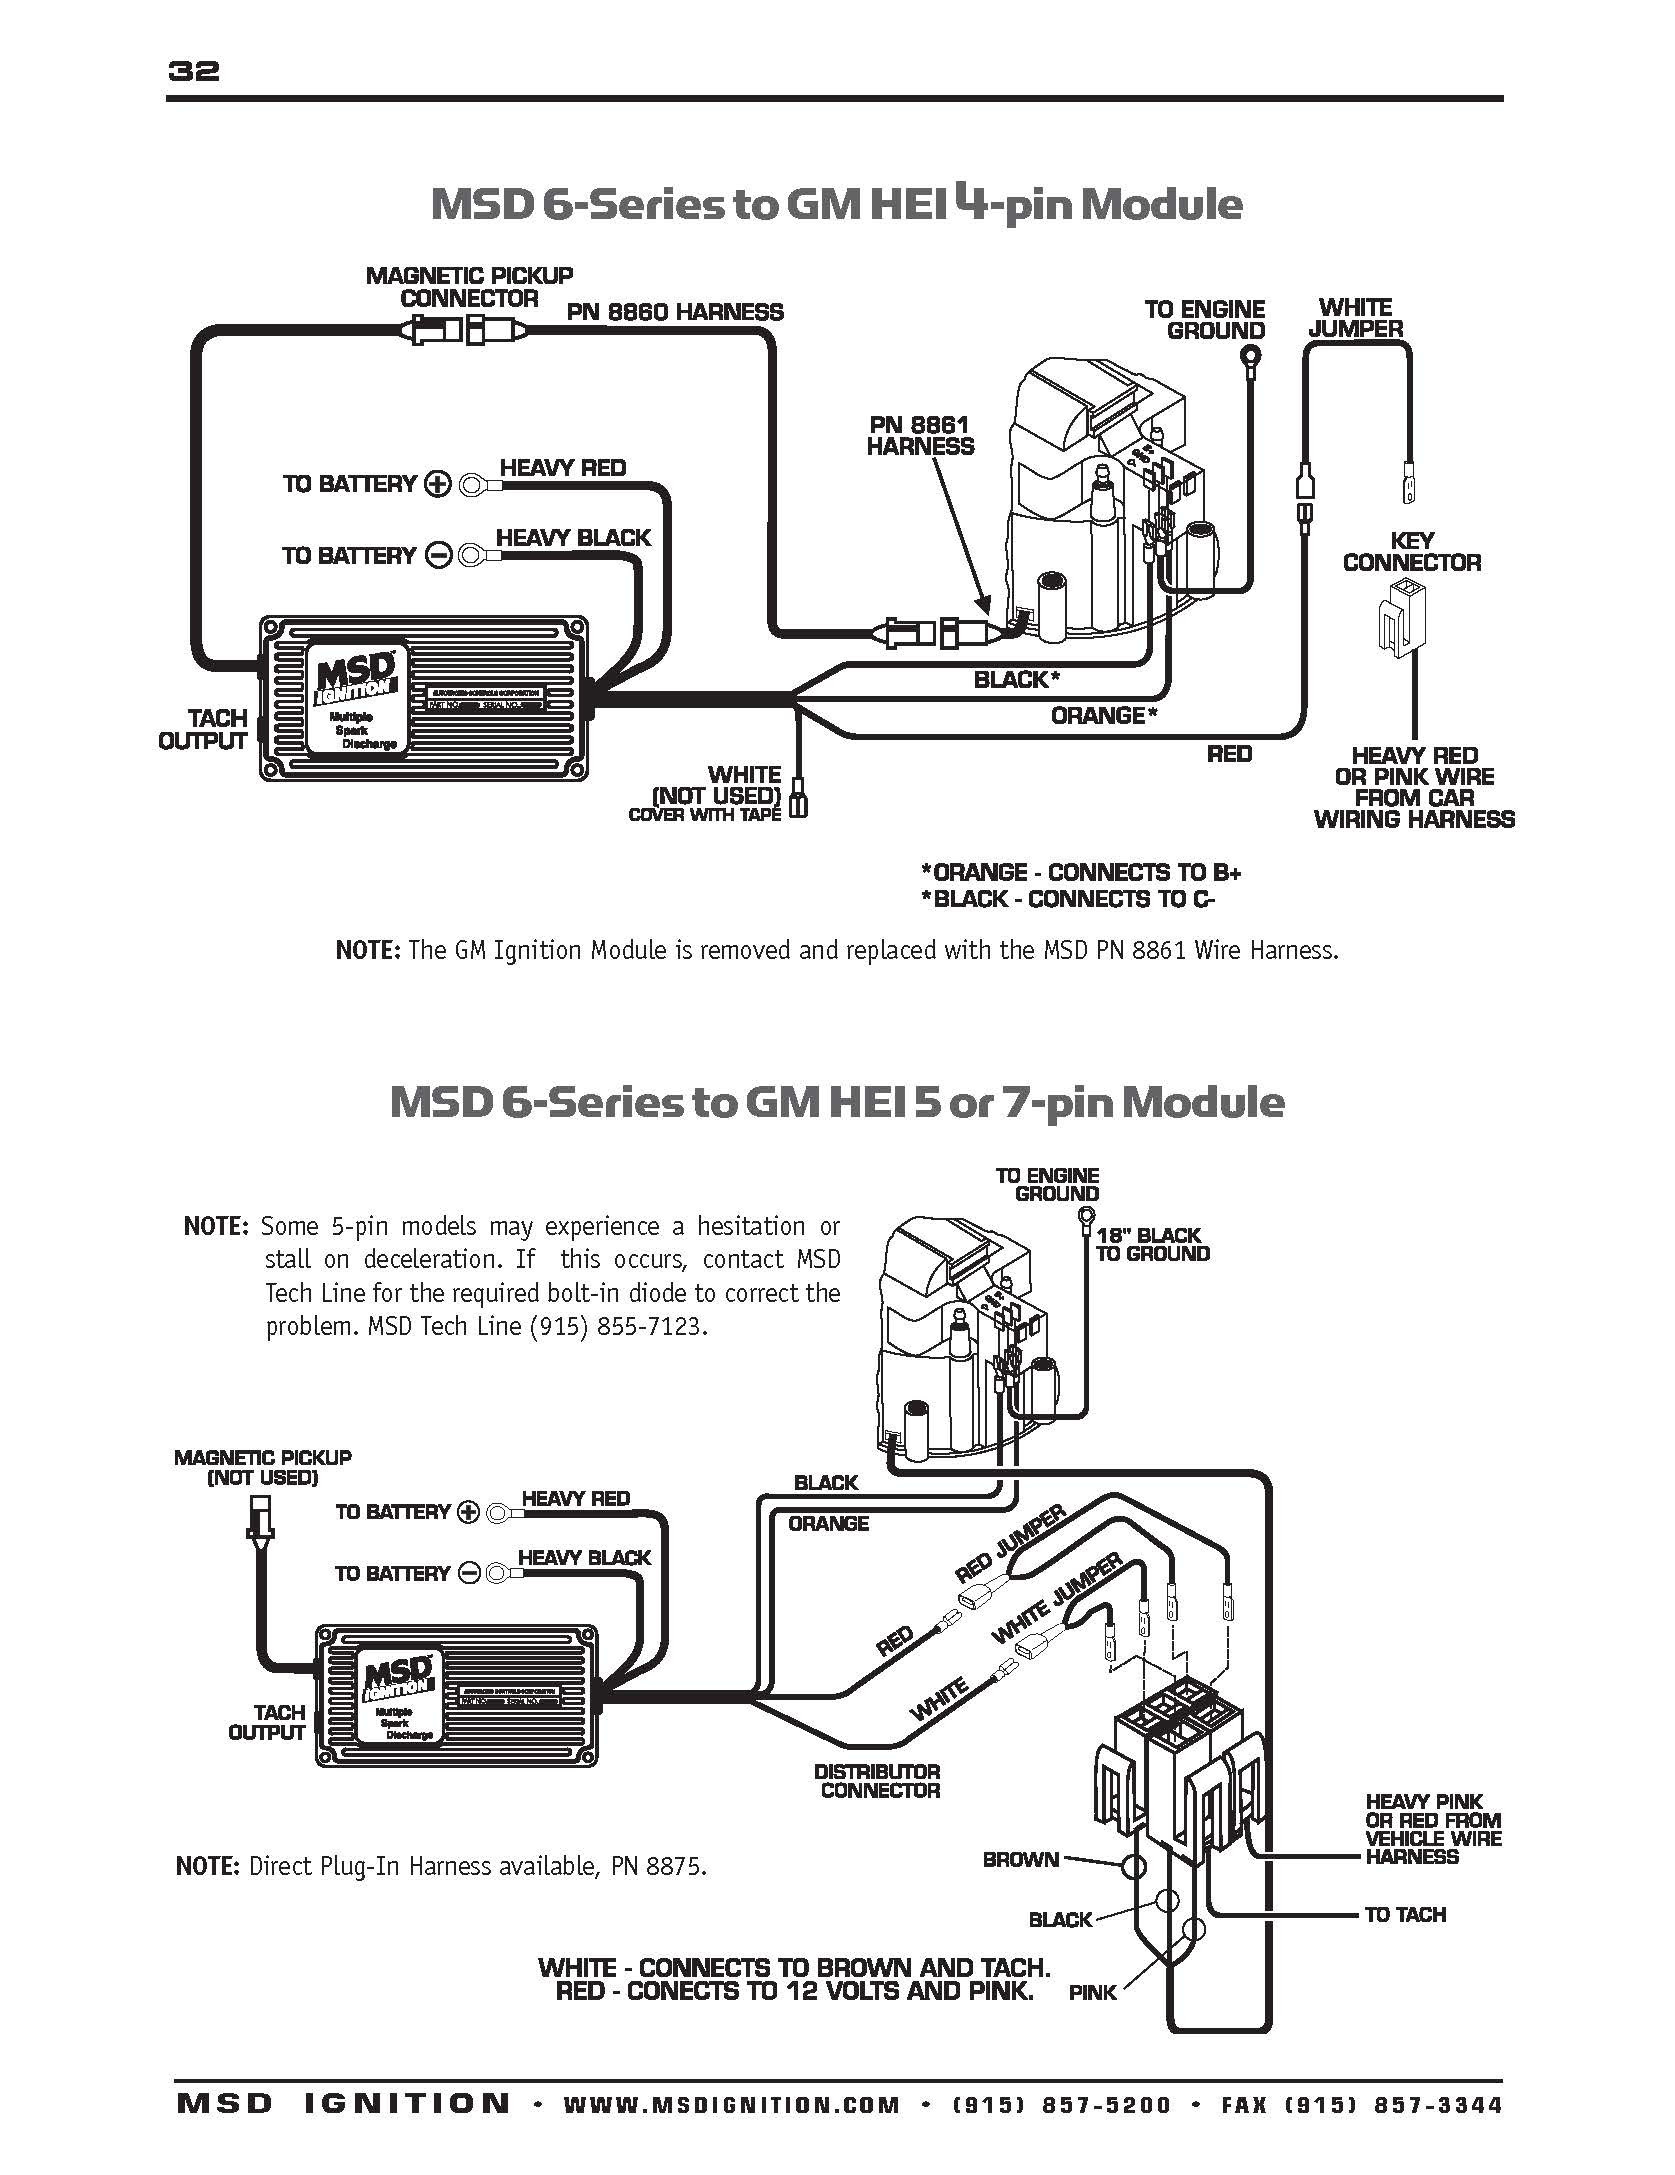 msd 6al wiring diagram chevy hei Download-Hei Ignition 6al Msd 6Al Wiring Diagram Fitfathers Me Outstanding Blurts And 16-h